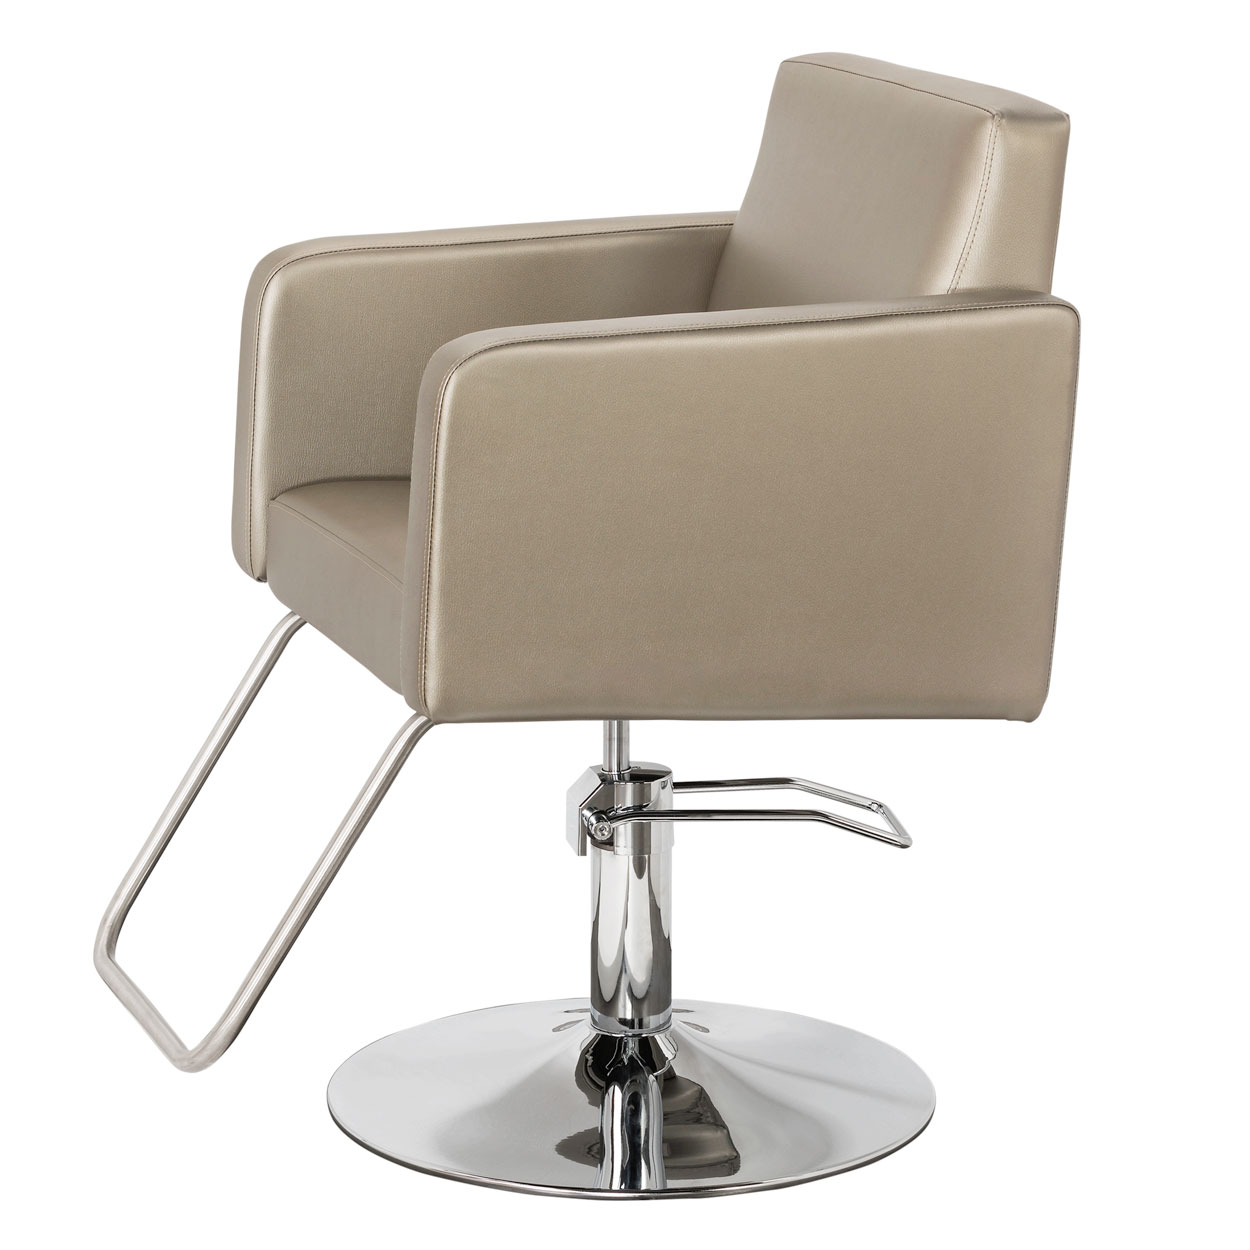 Custom Modin Hair Salon Styling Chair alternative product image 1